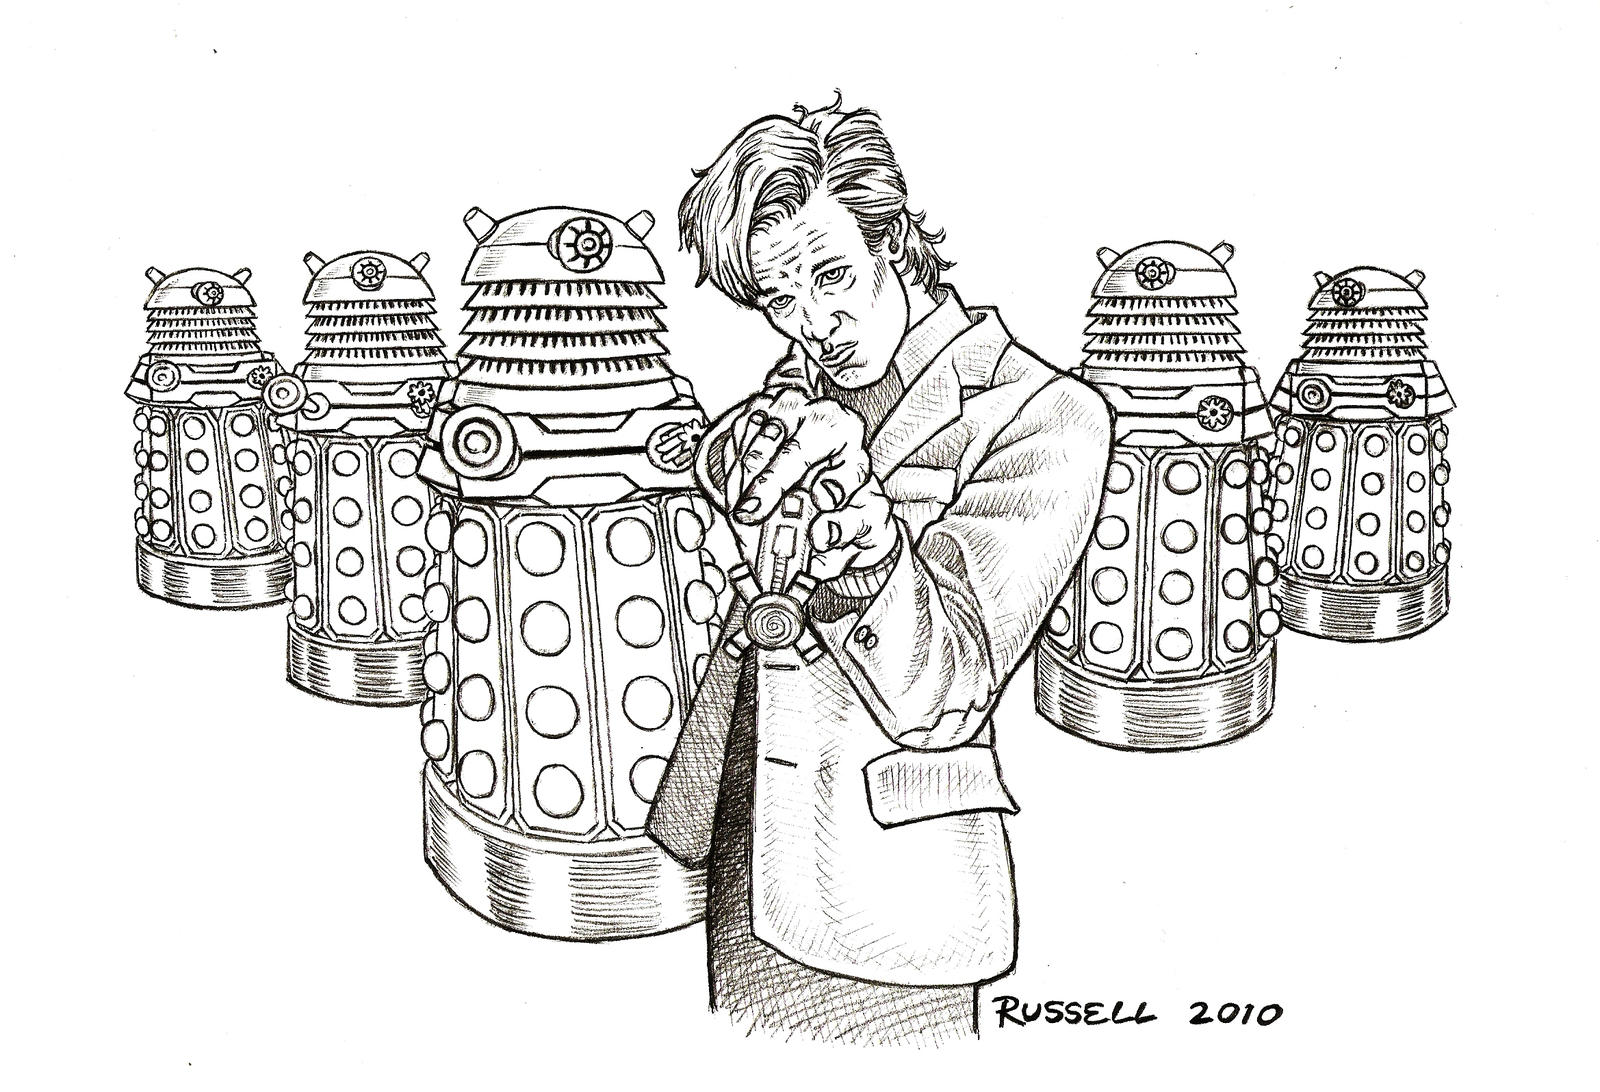 Doctor who vs the daleks by bungle0 on deviantart for Doctor who tardis coloring pages